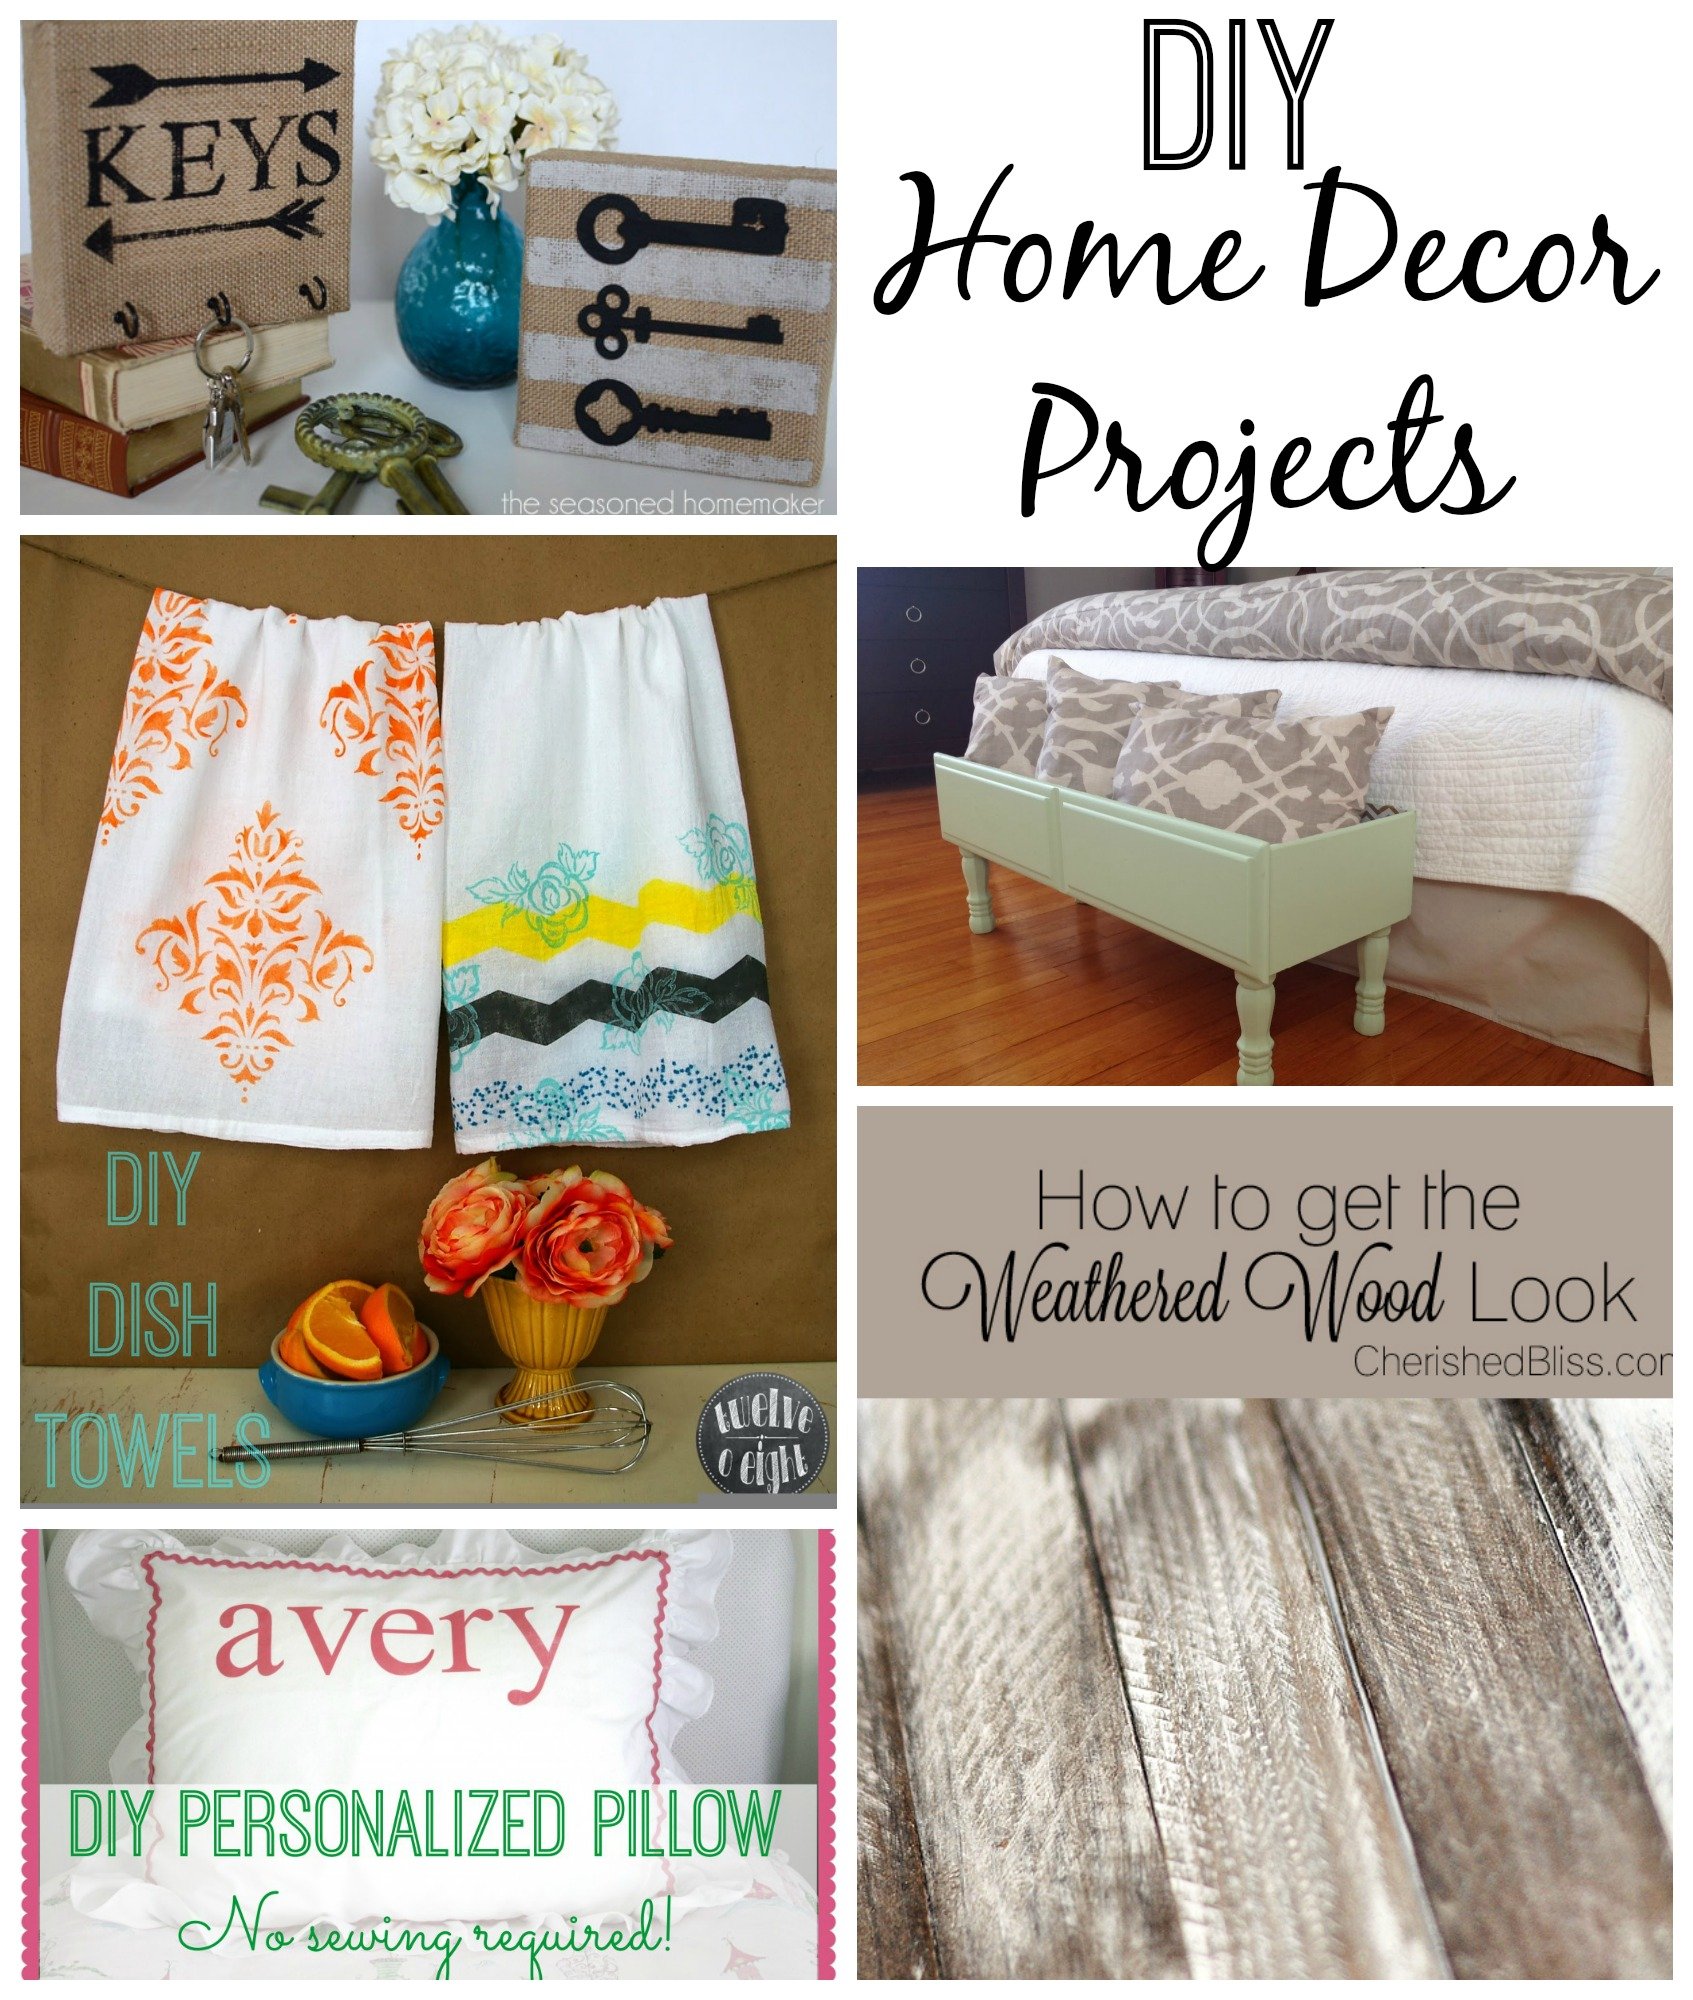 Home Design Ideas Handmade: Creative Connection Features